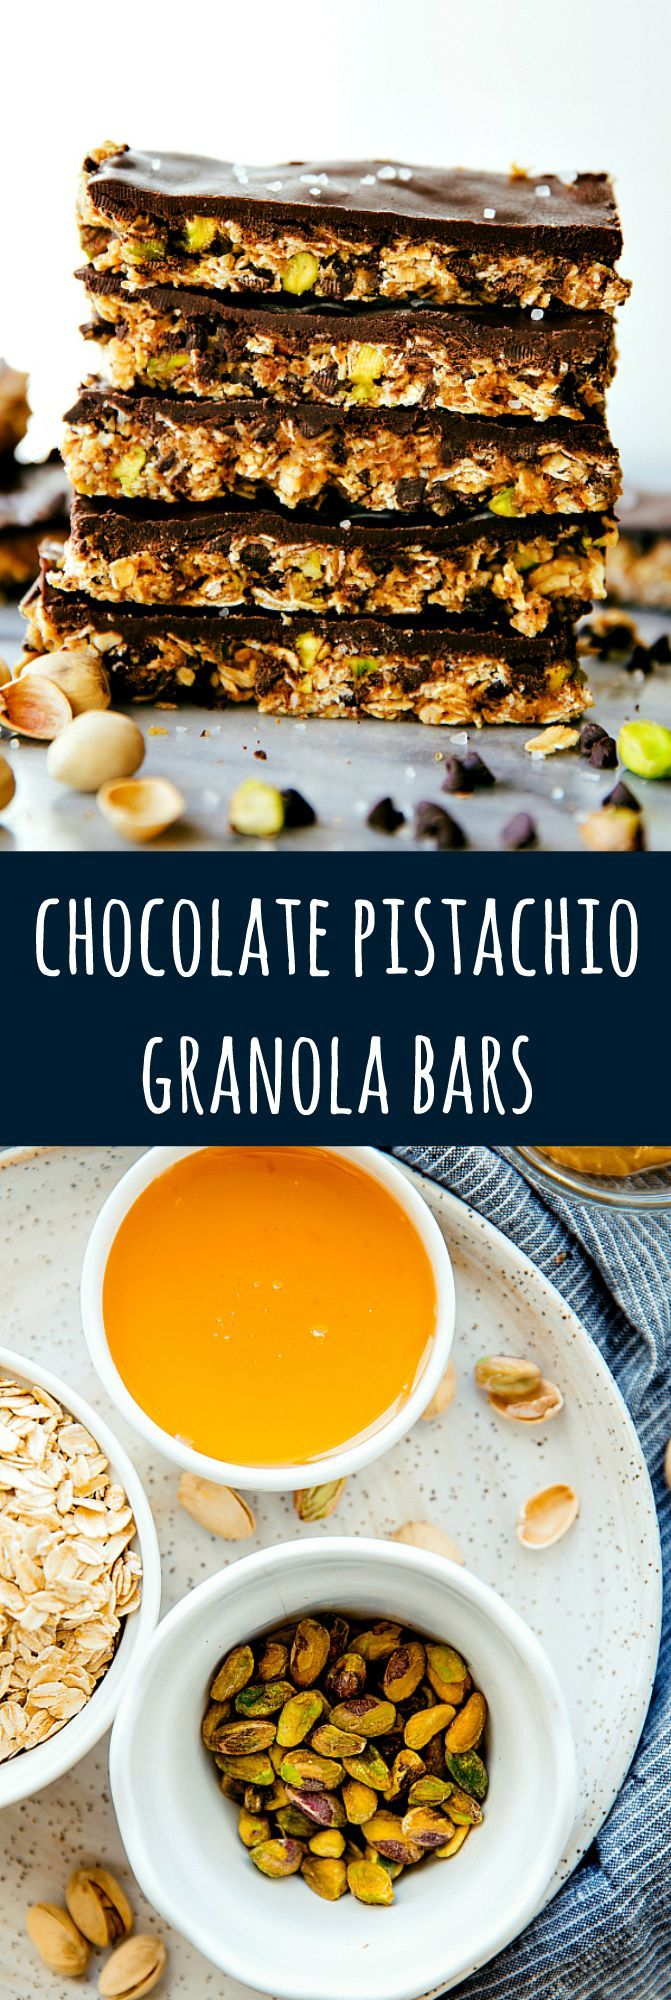 A healthier Chewy Dipps copycat granola bar that is naturally sweetened, no baking required, and absolutely delicious!